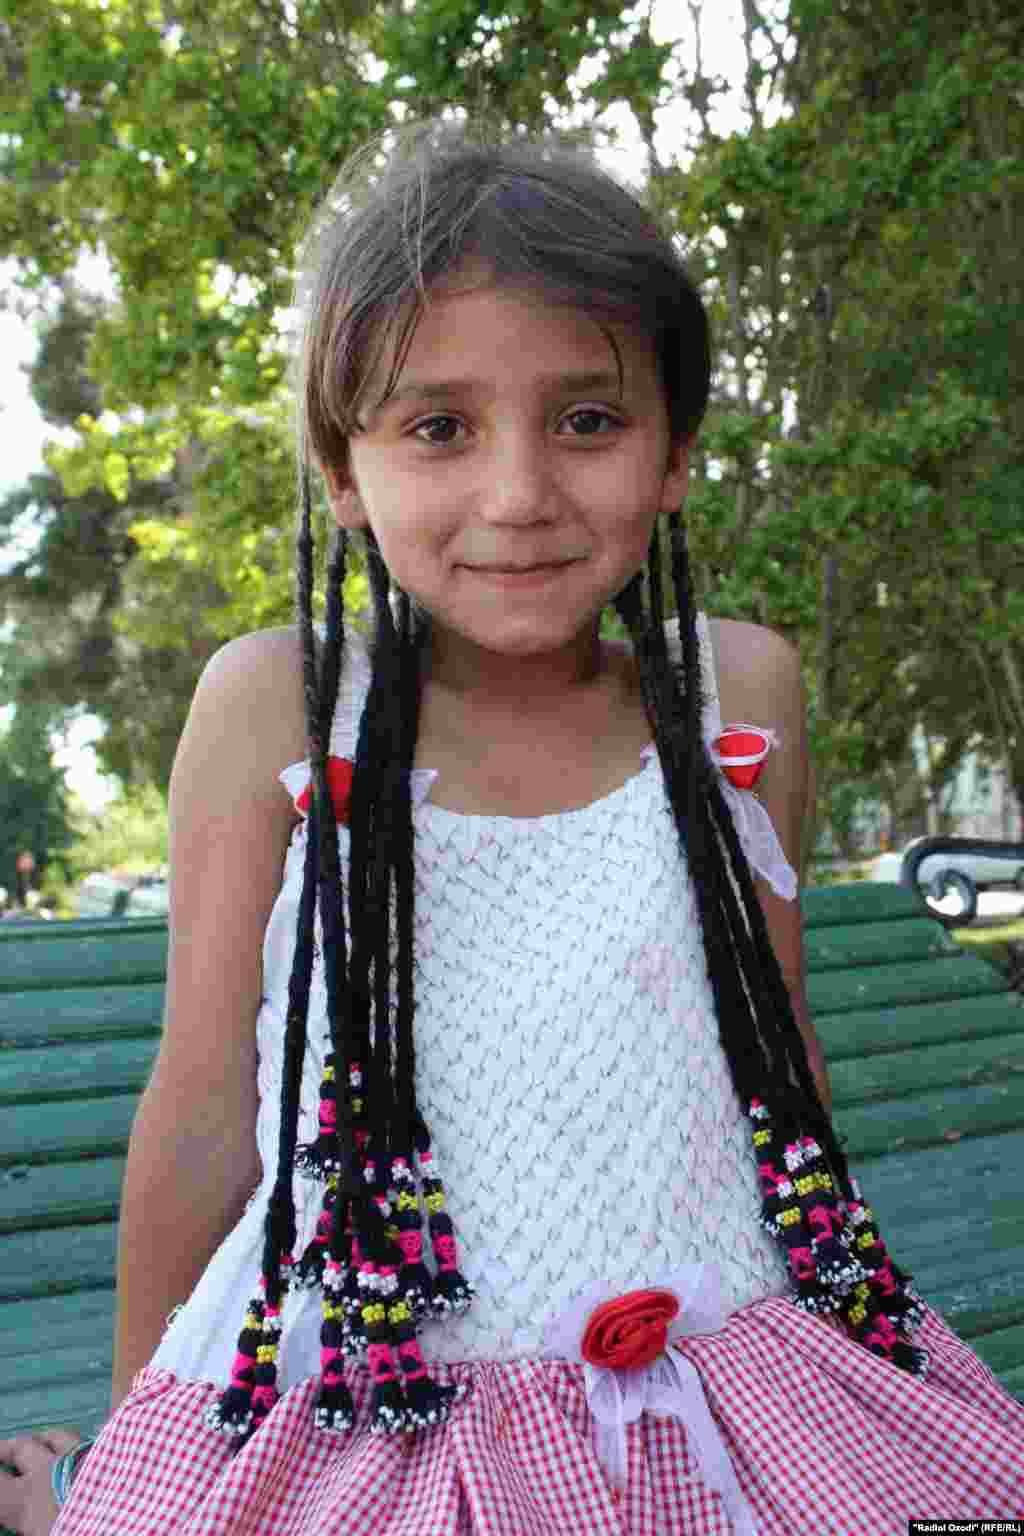 Jasmina, 6, sells chewing gum and chocolate on the streets of Dushanbe, the capital of Tajikistan. Her father is a migrant worker in Russia. She wishes for him to come home as soon as possible, and dreams of becoming a doctor.